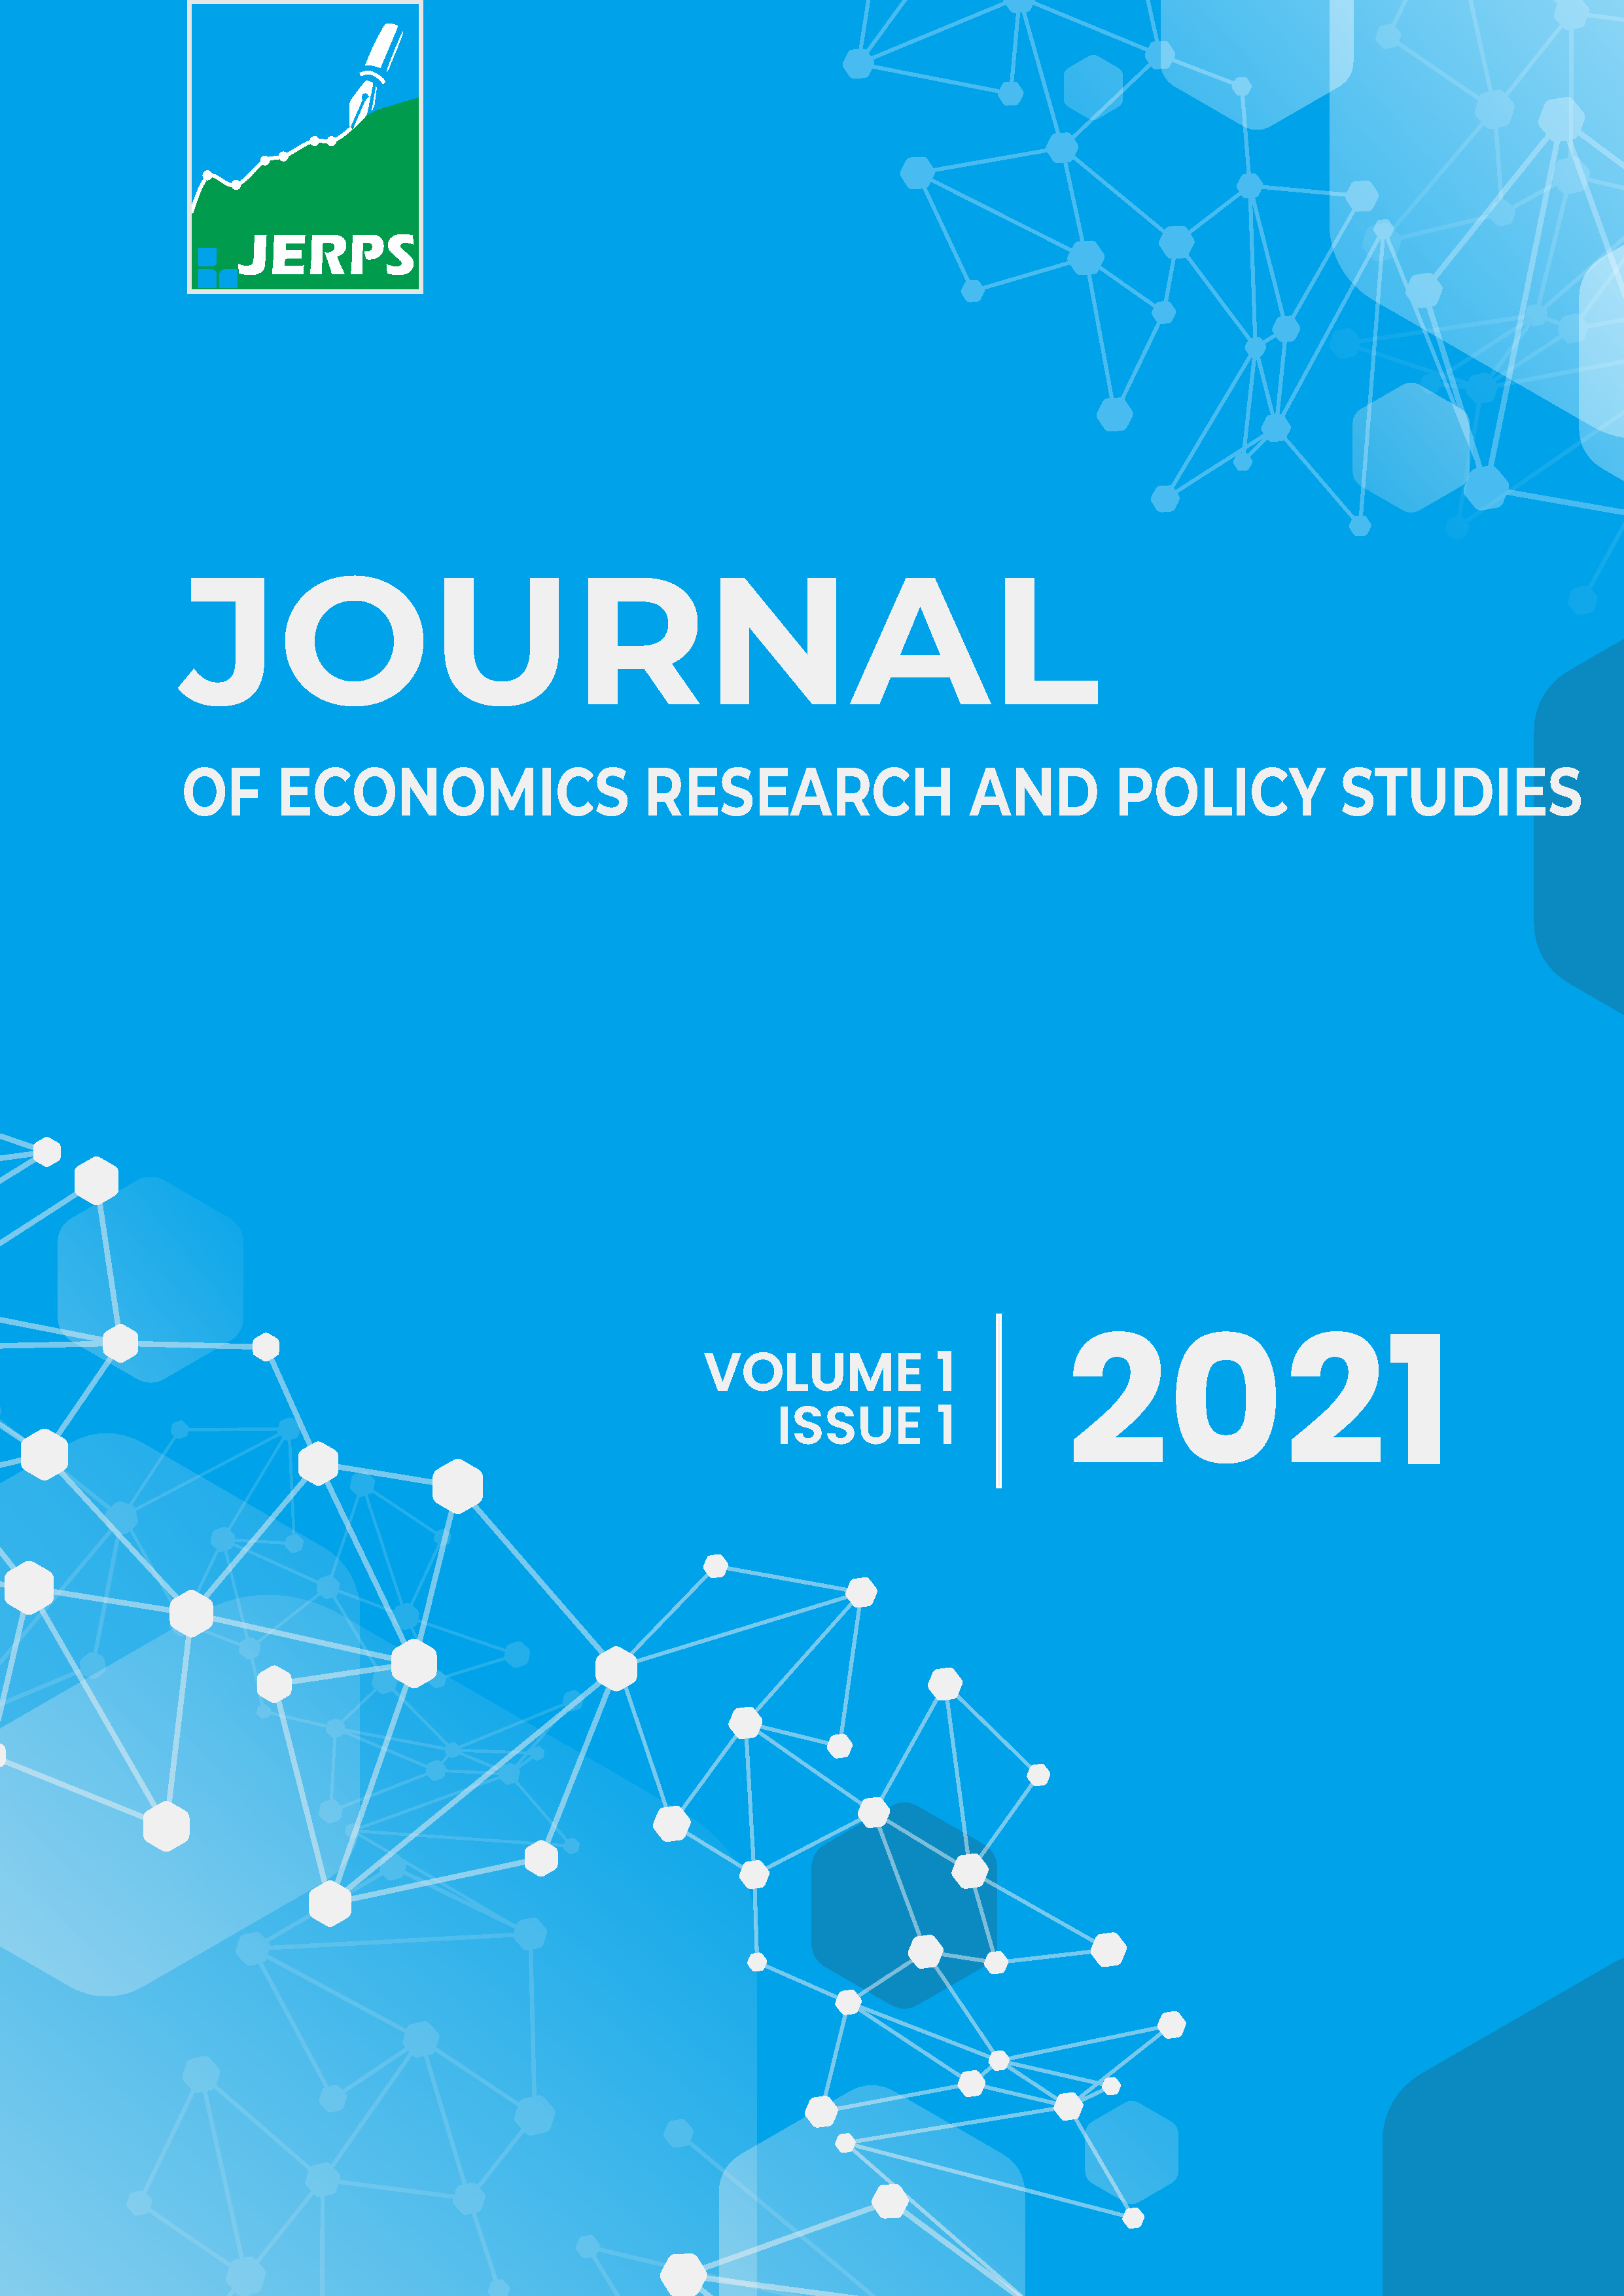 View Vol. 1 No. 1 (2021): Journal of Economics Research and Policy Studies